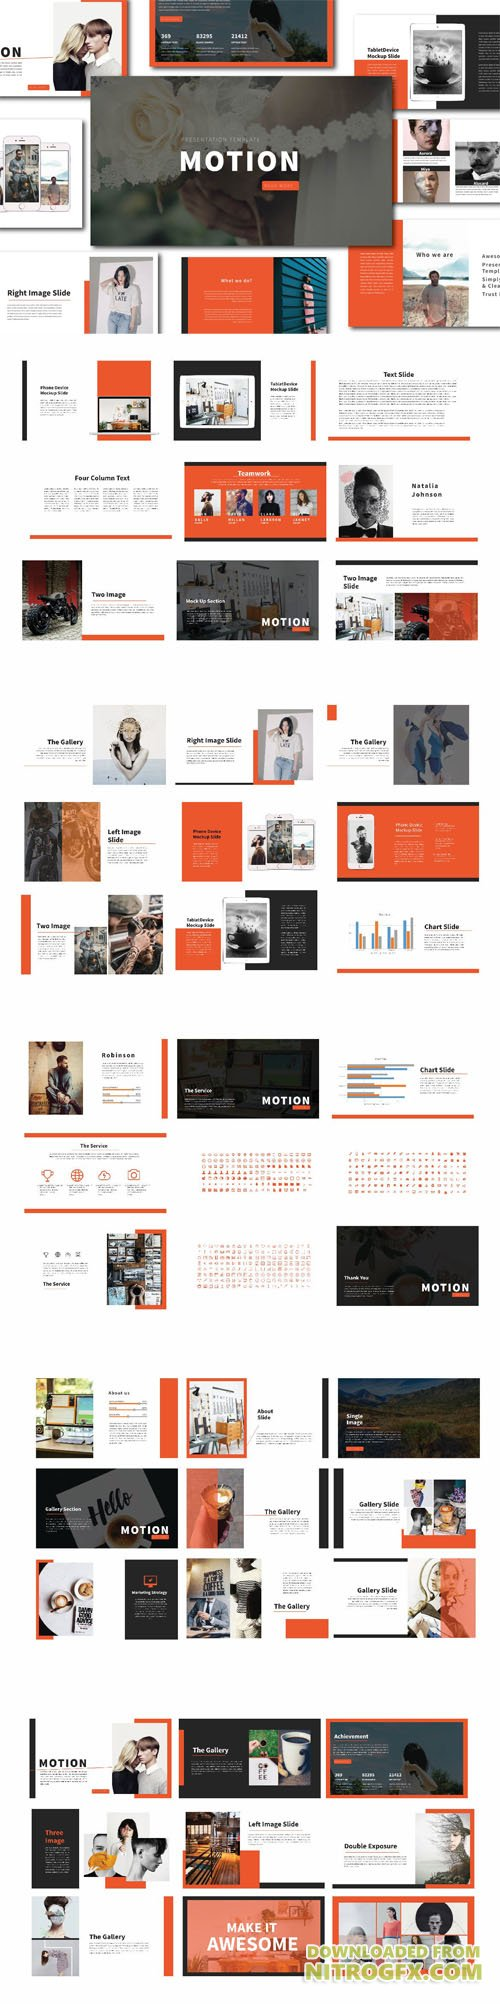 Motion Powerpoint Template